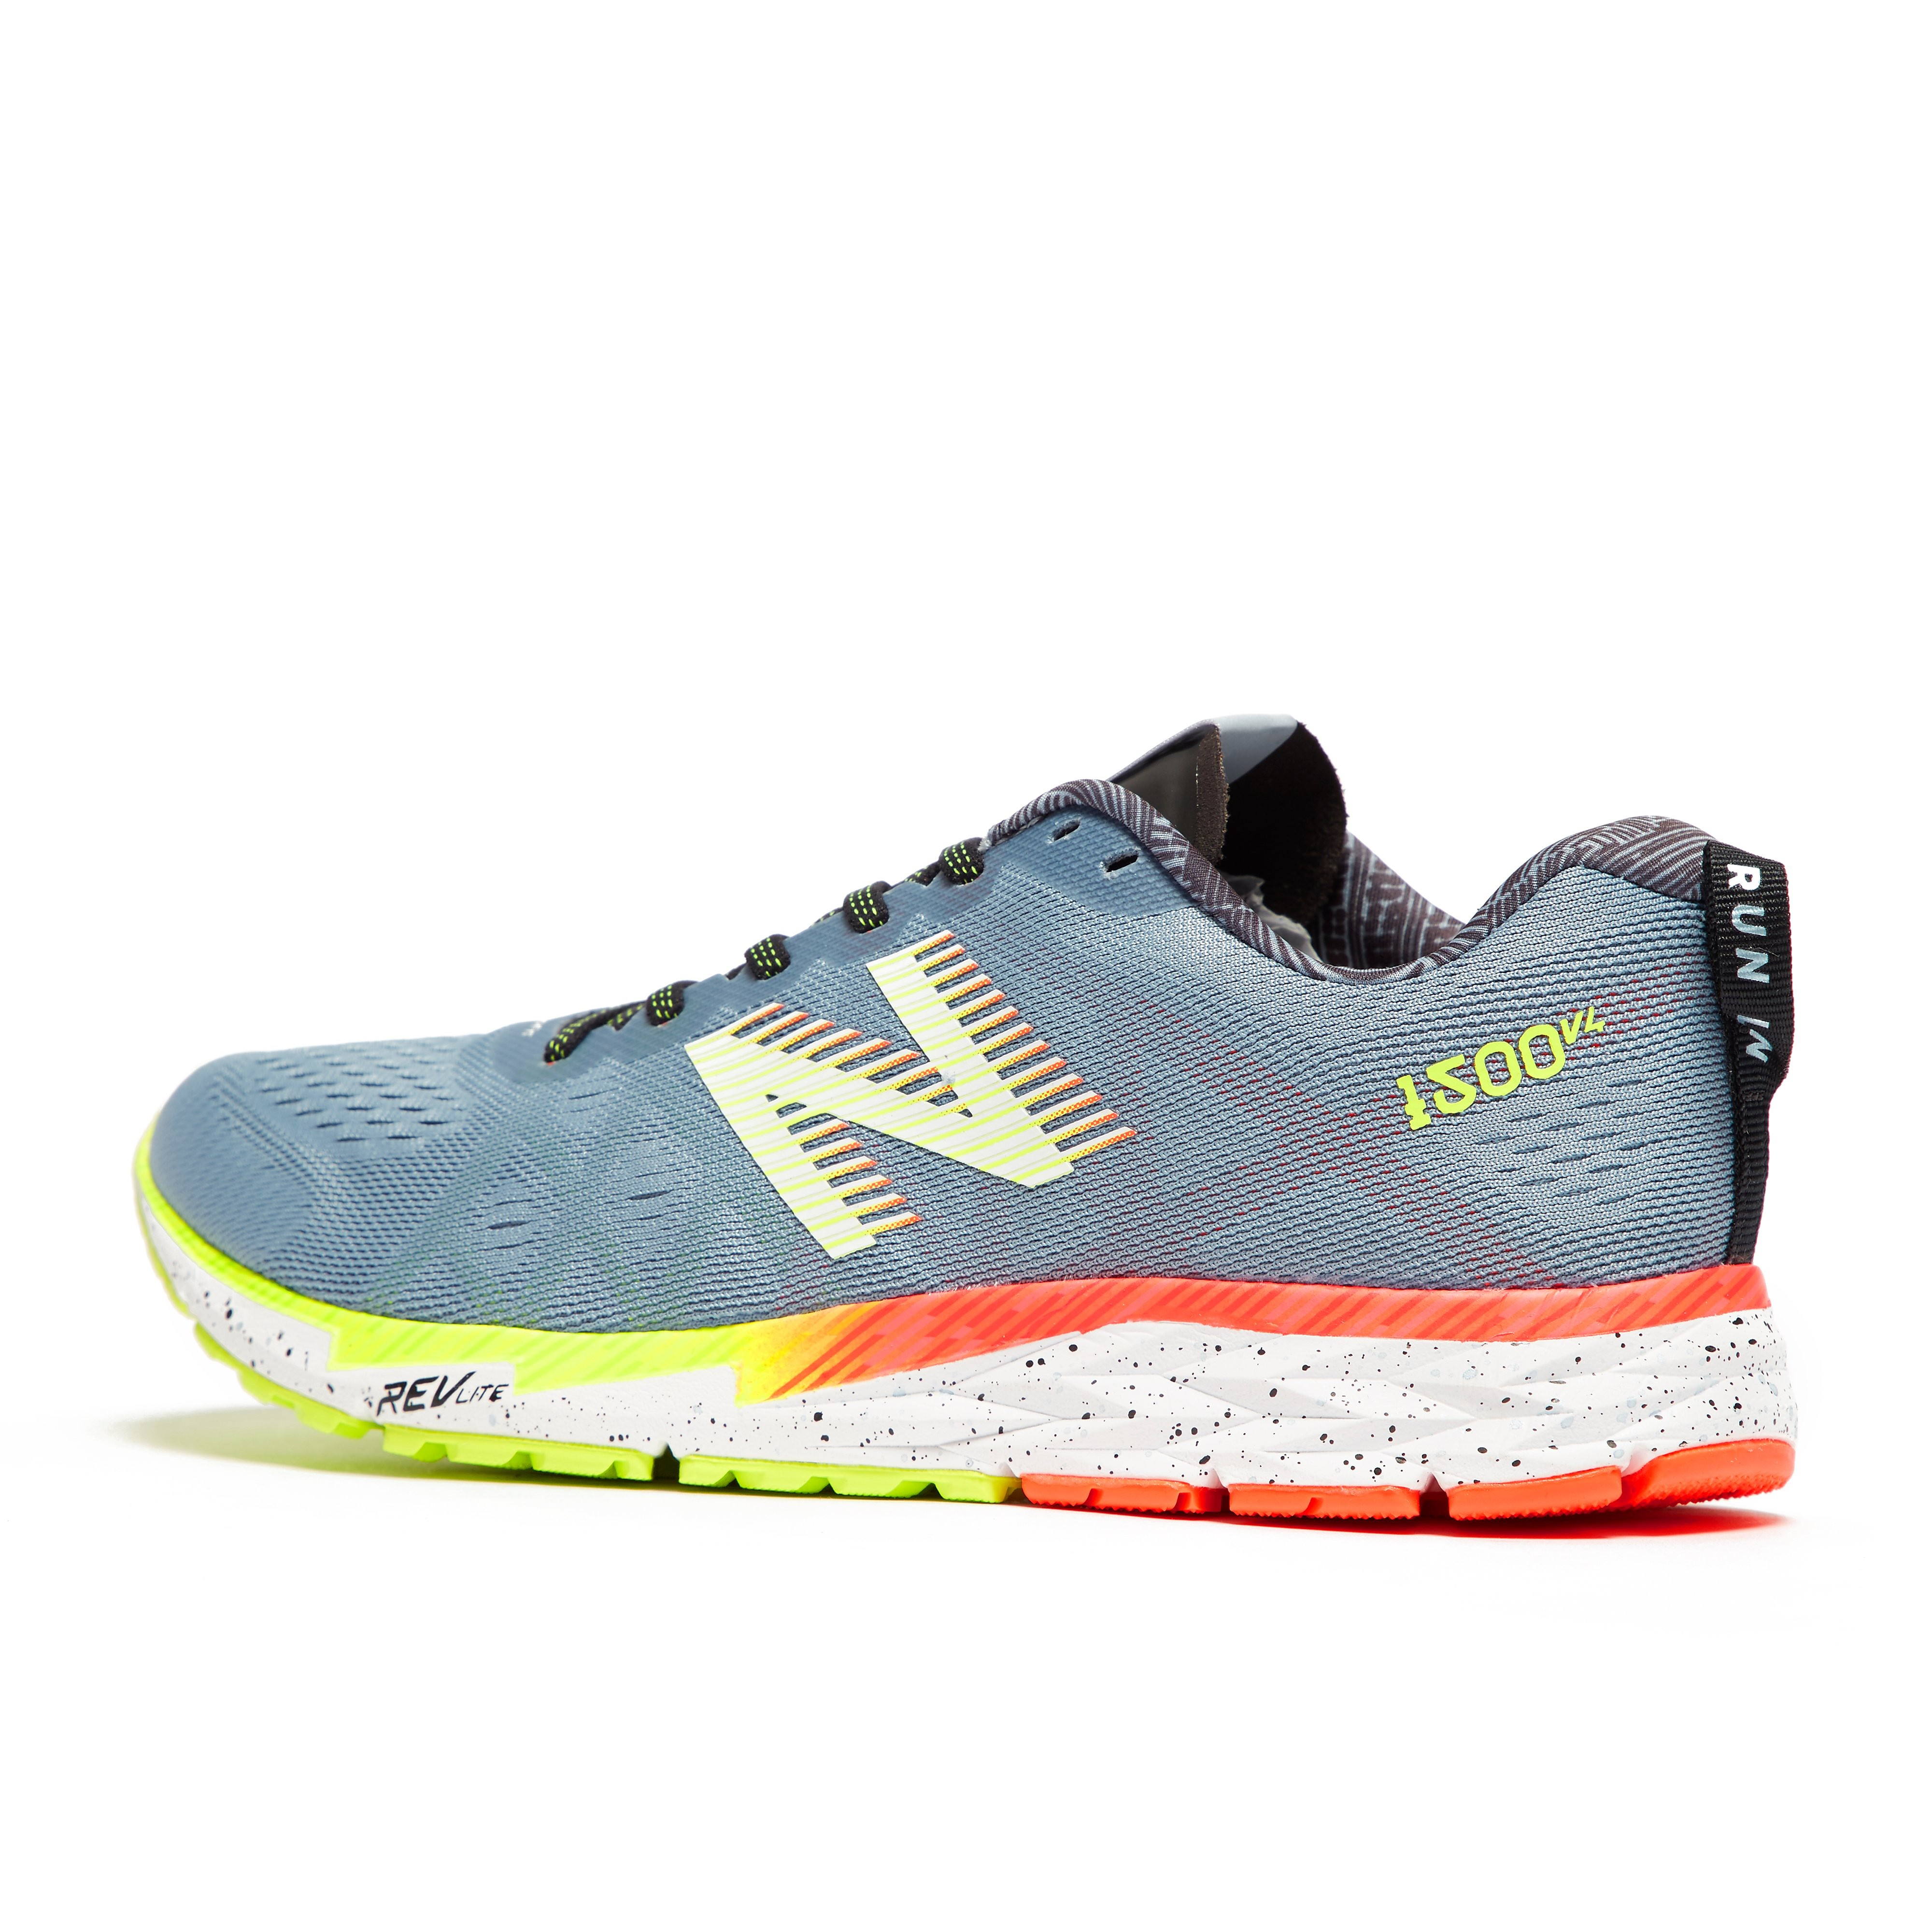 New Balance 1500V4 London Marathon Edition Men's Running Shoes